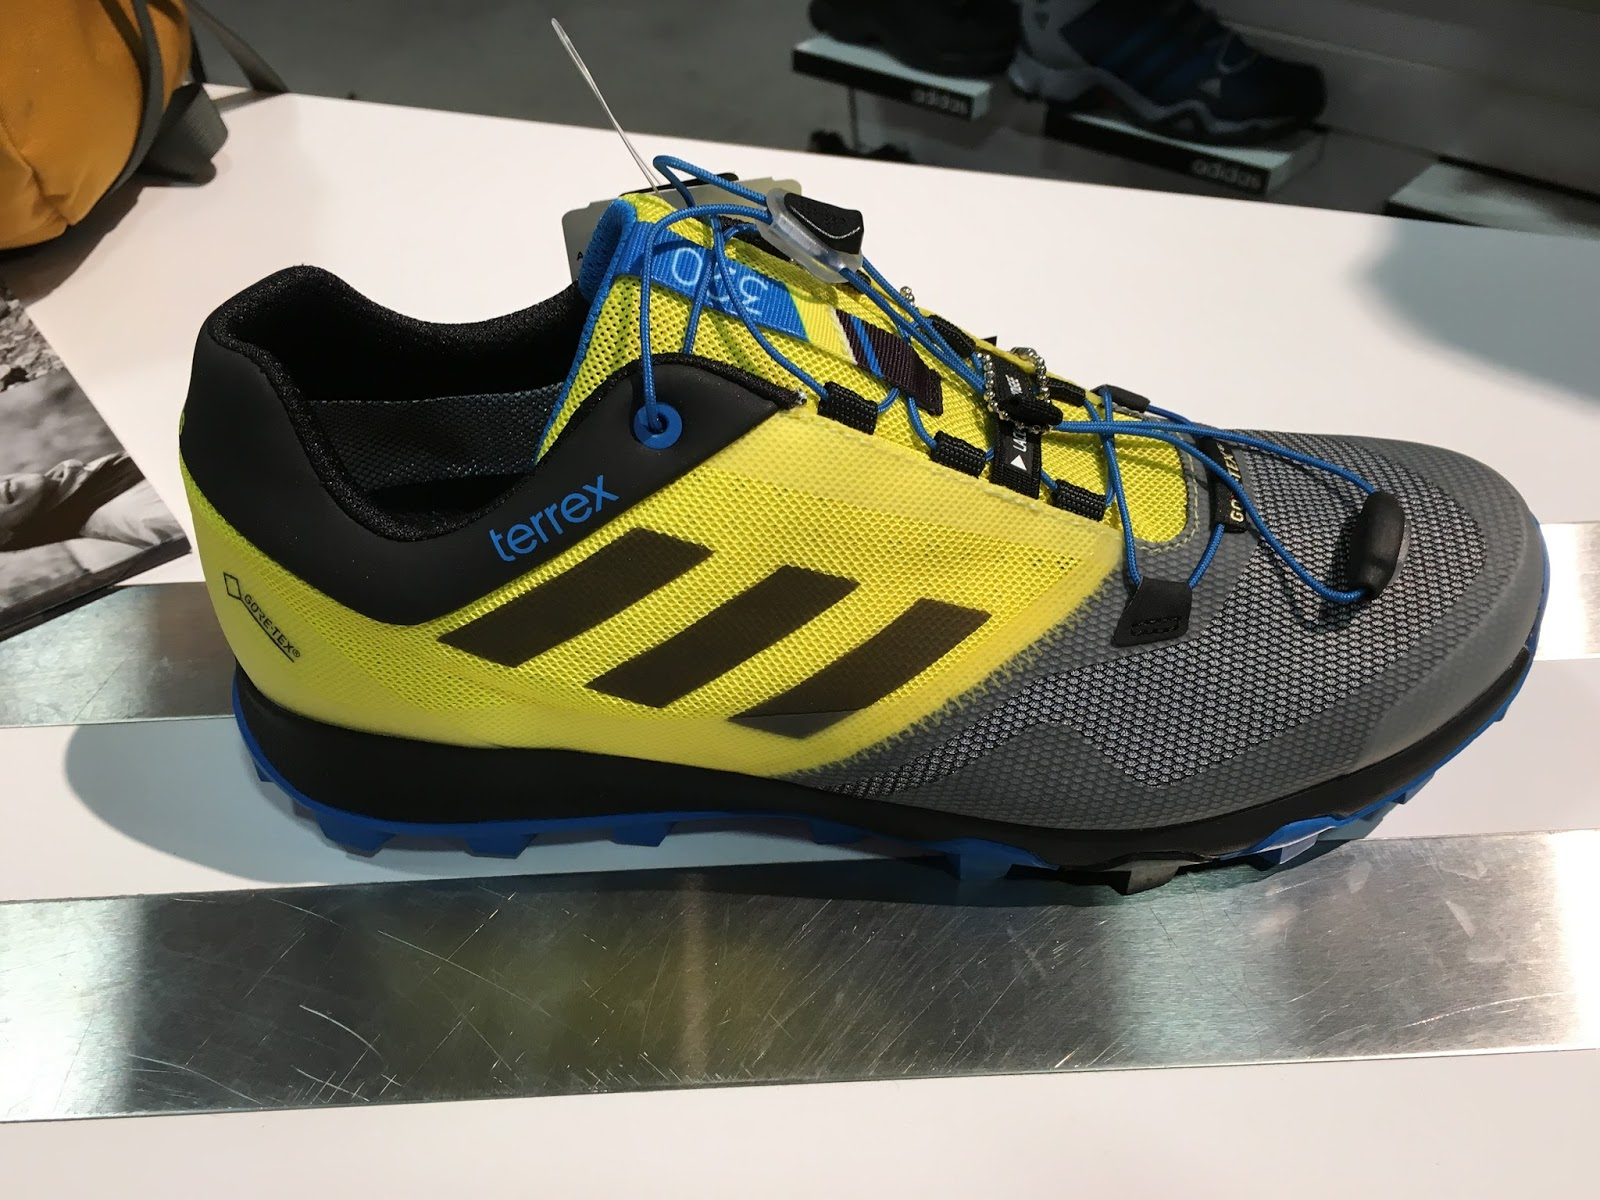 Road Trail Run: Outdoor Retailer Winter 16: Road and Trail